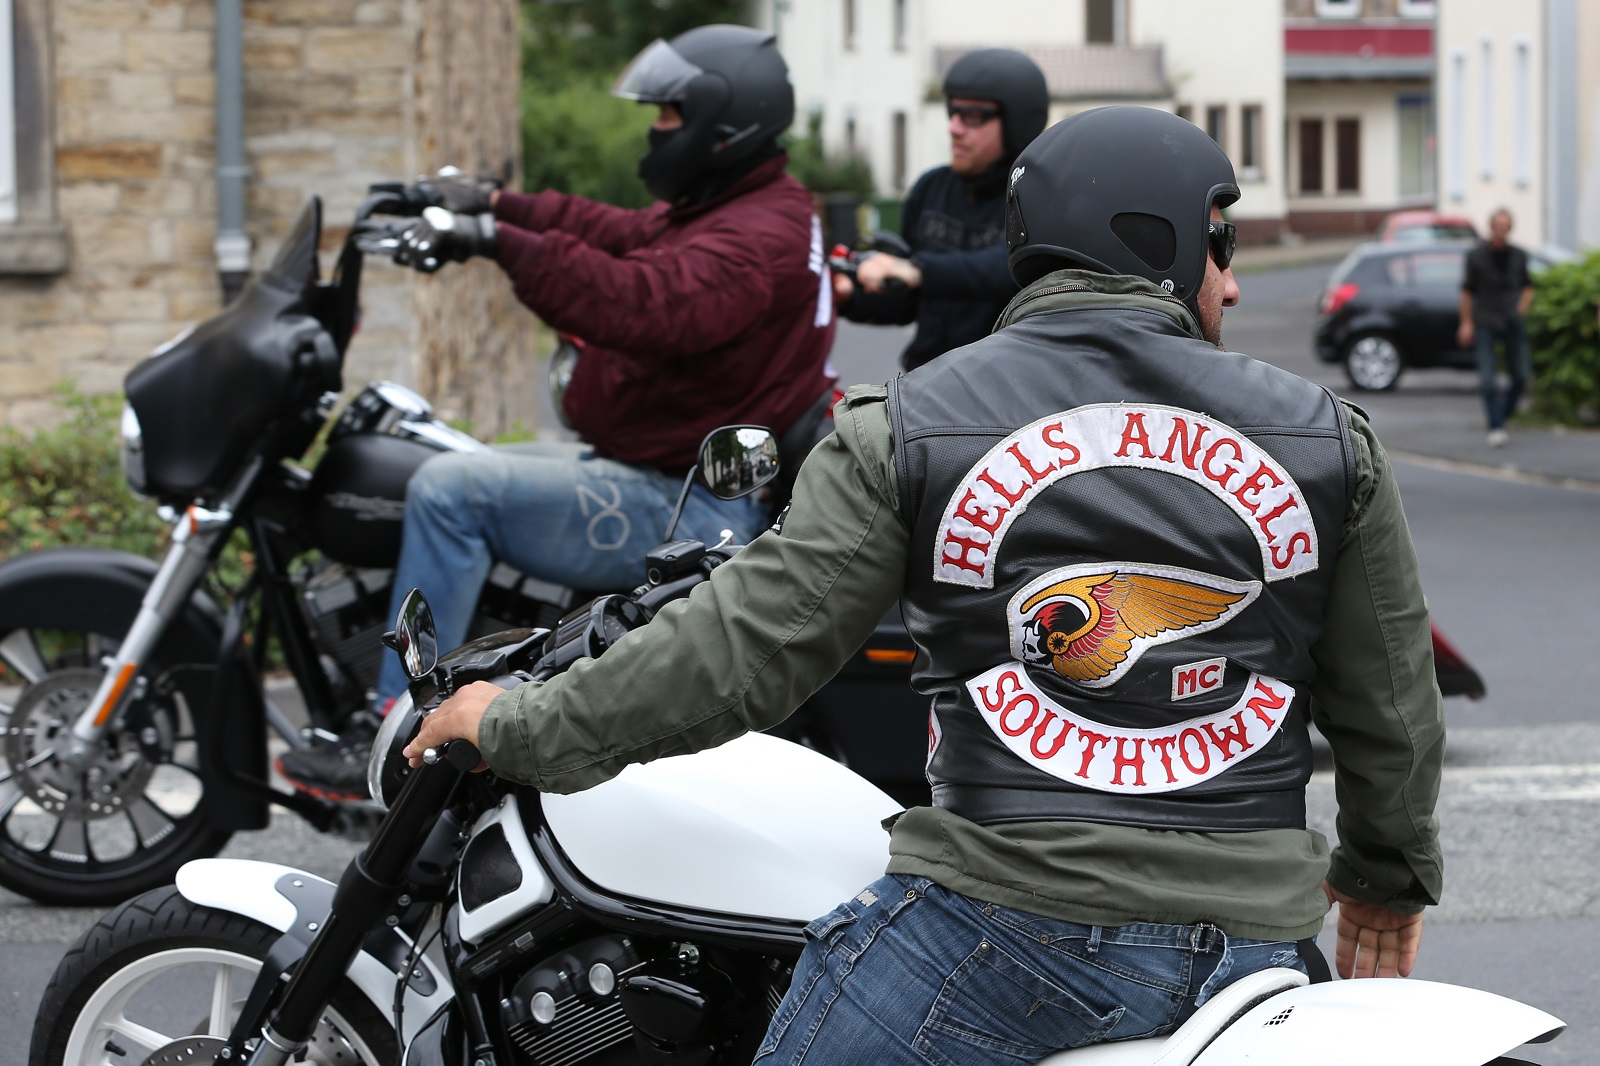 Hell's Angels member Southtown Germany